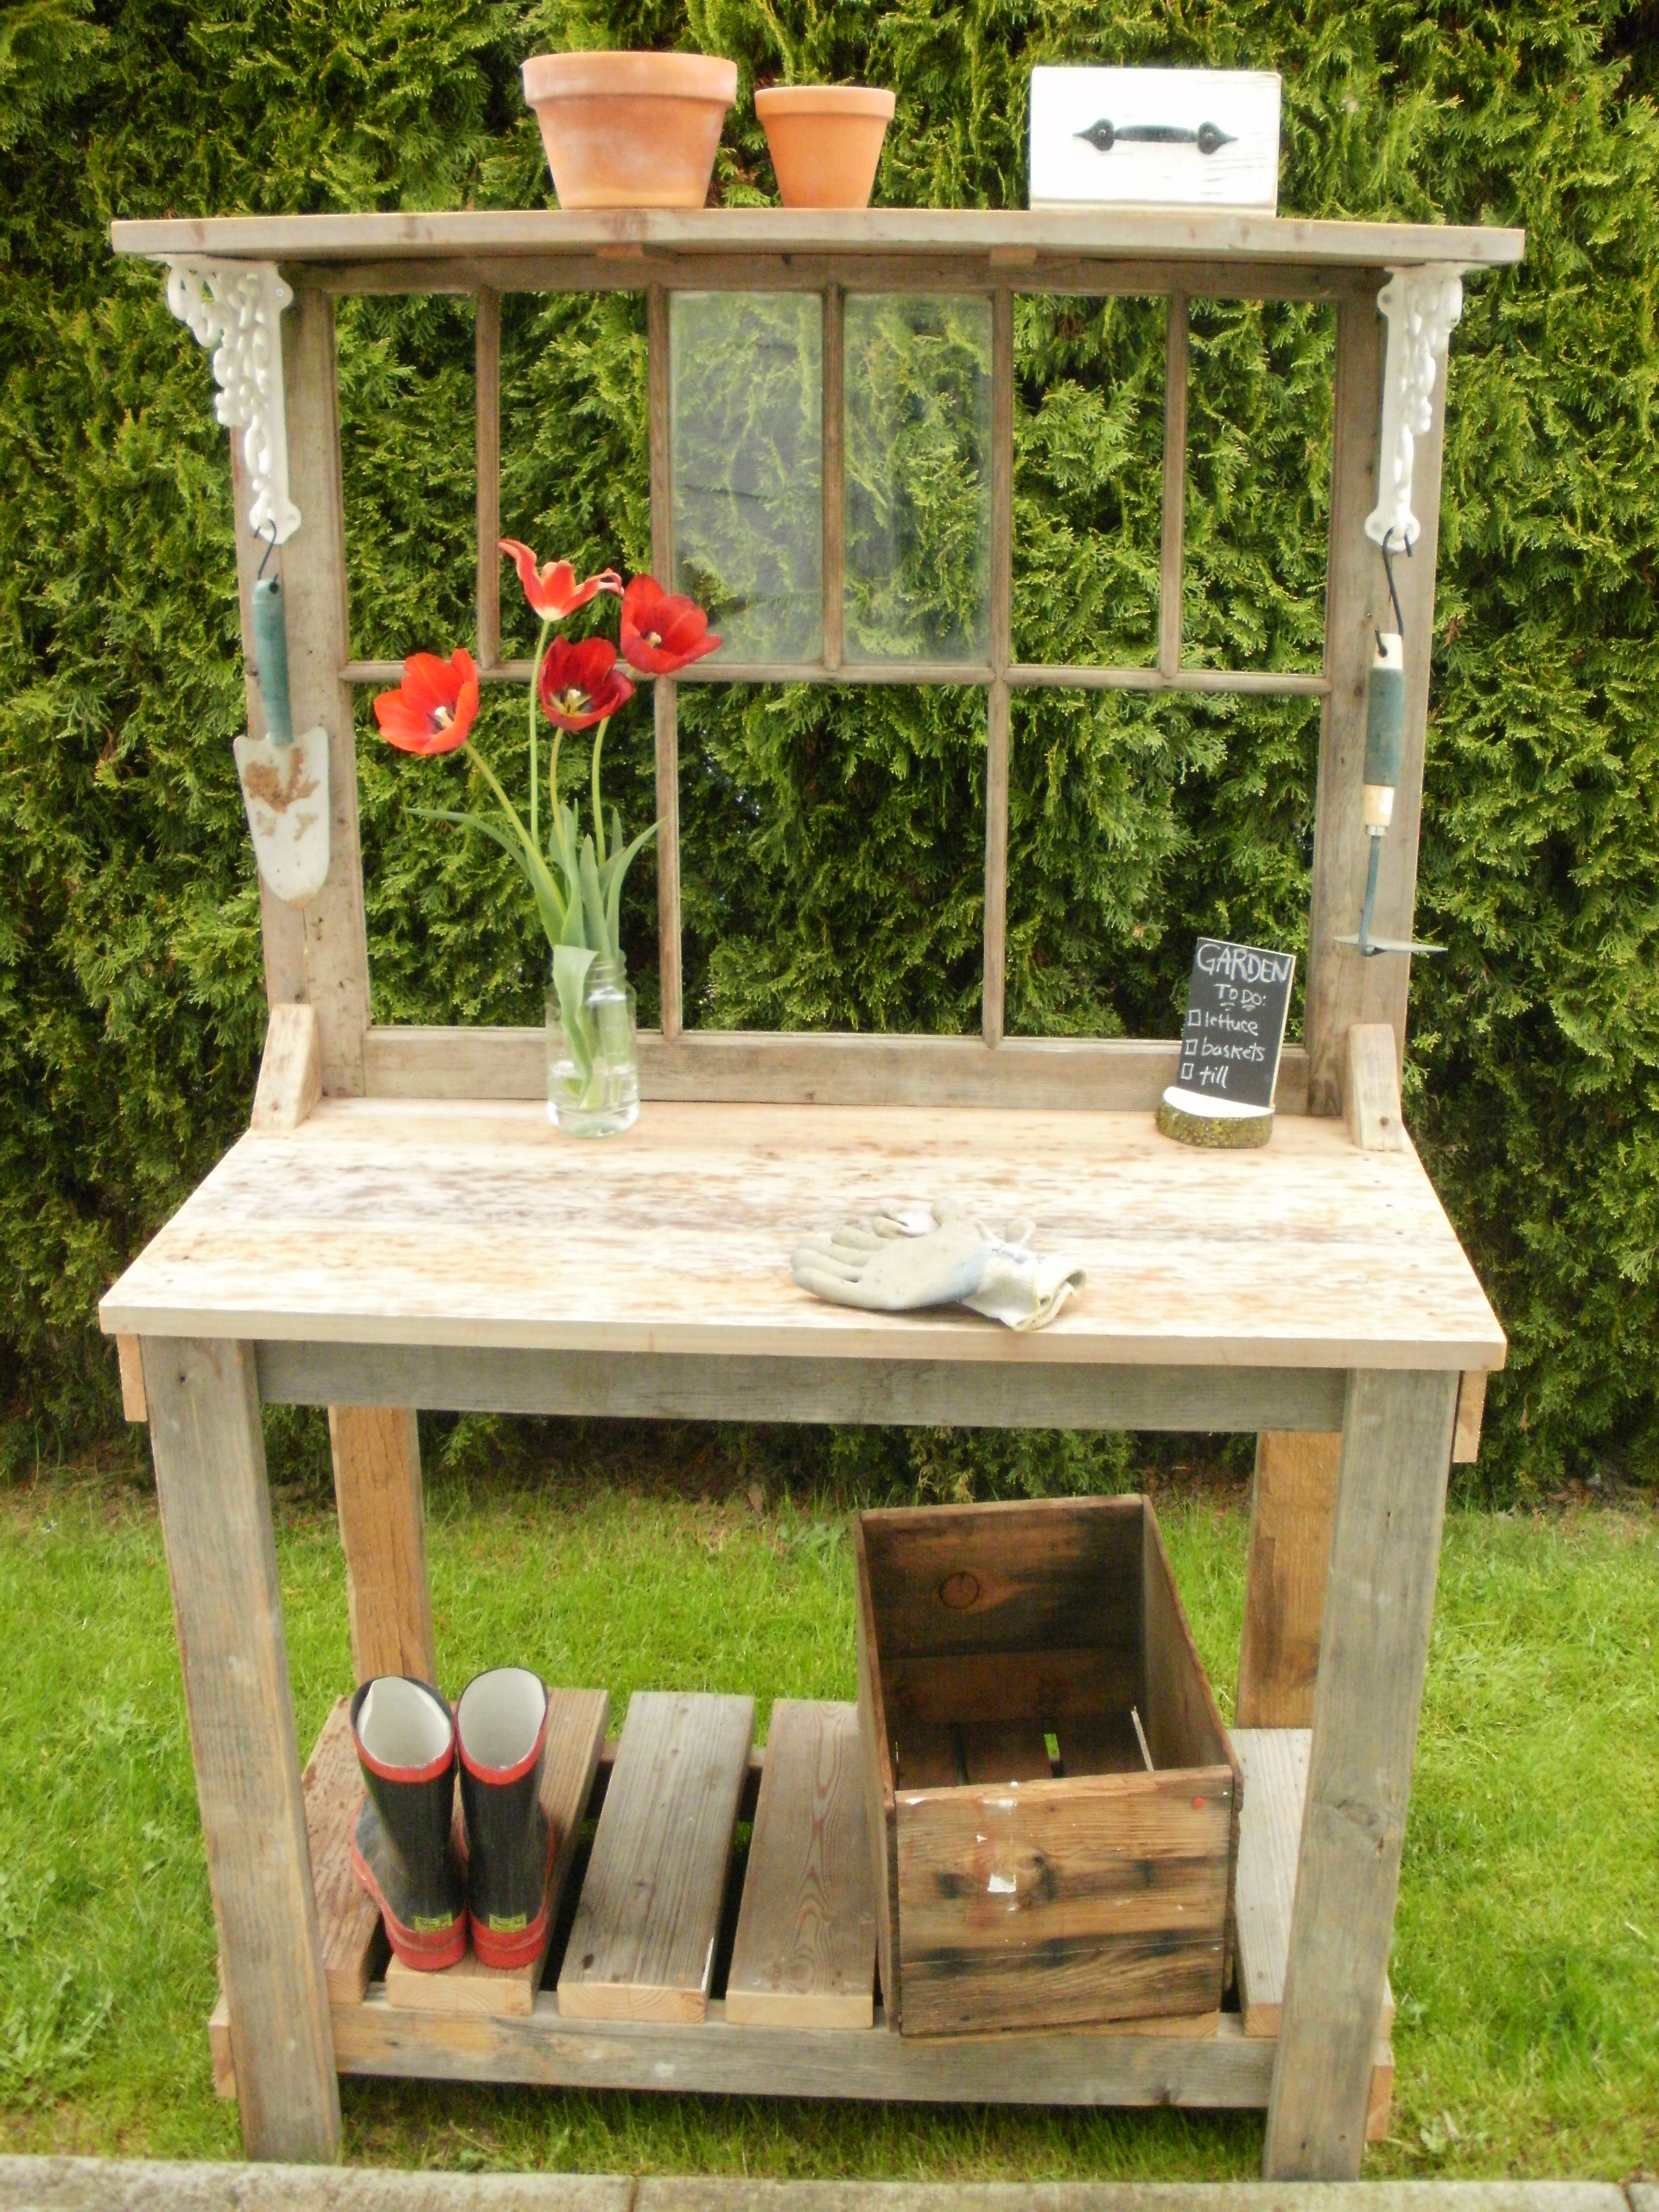 Rustic Potting Bench with window